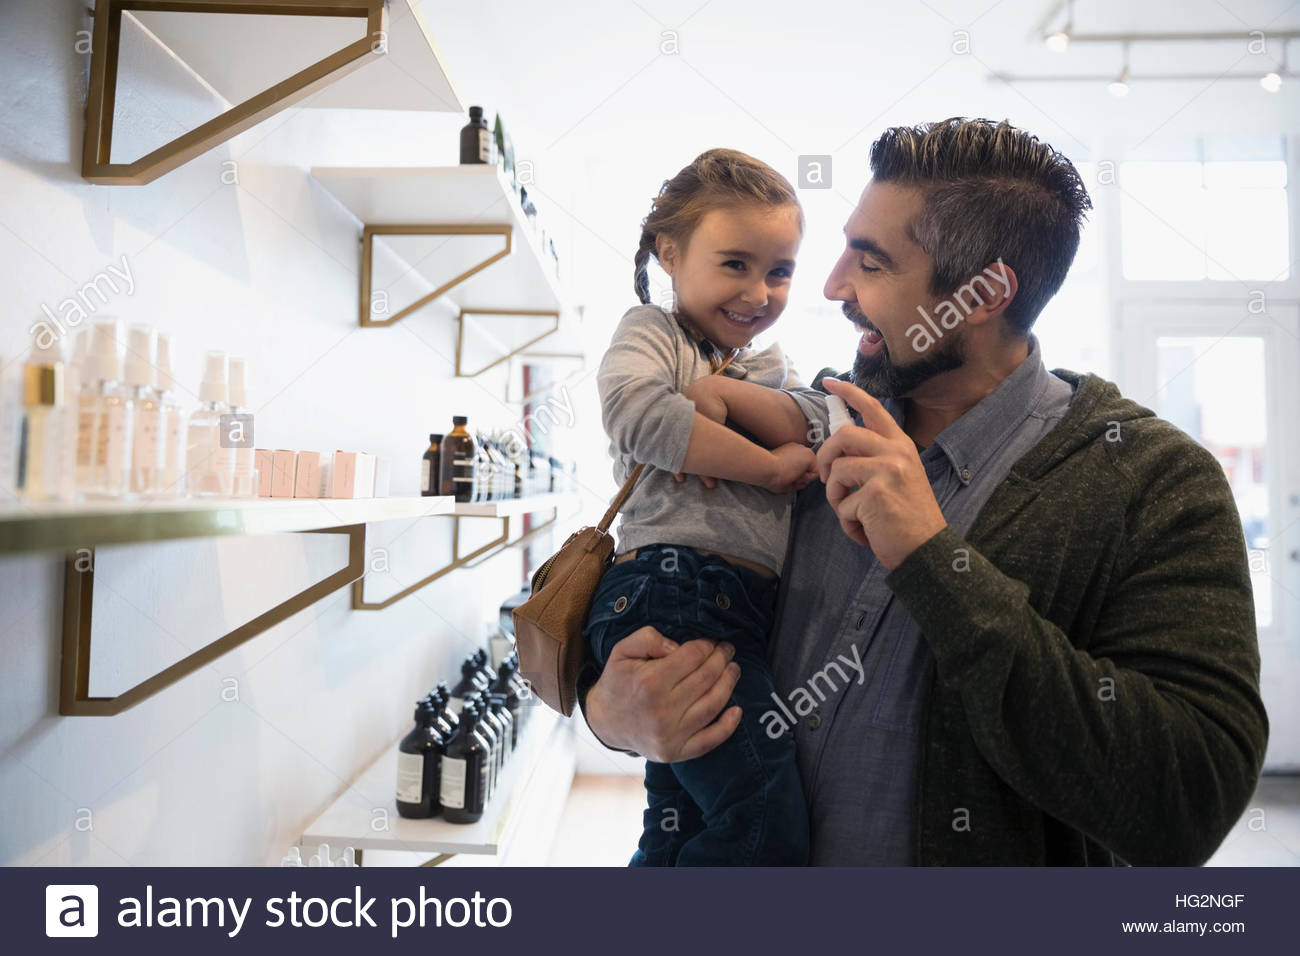 Father and daughter shopping spraying home fragrance in shop - Stock Image